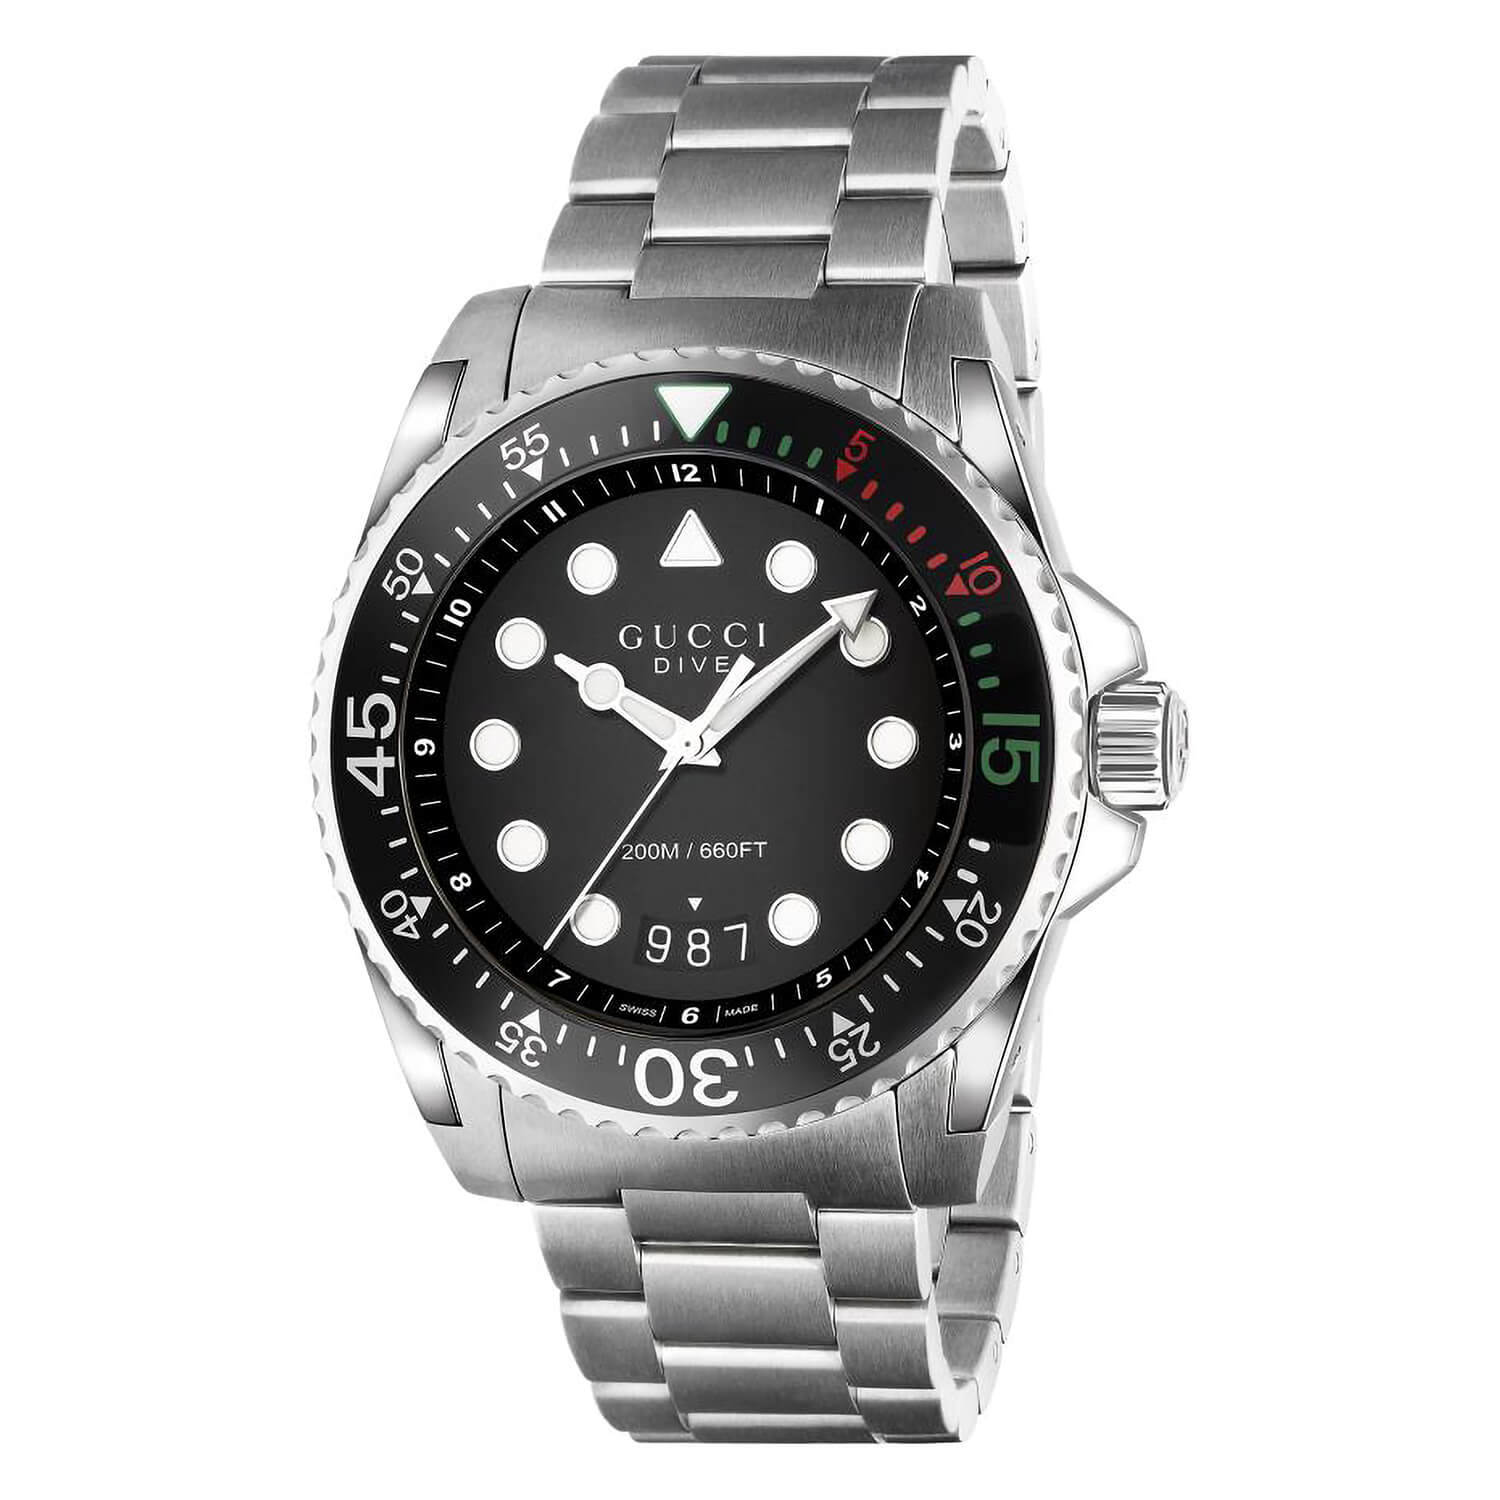 Men's Gucci Dive Stainless Steel Watch